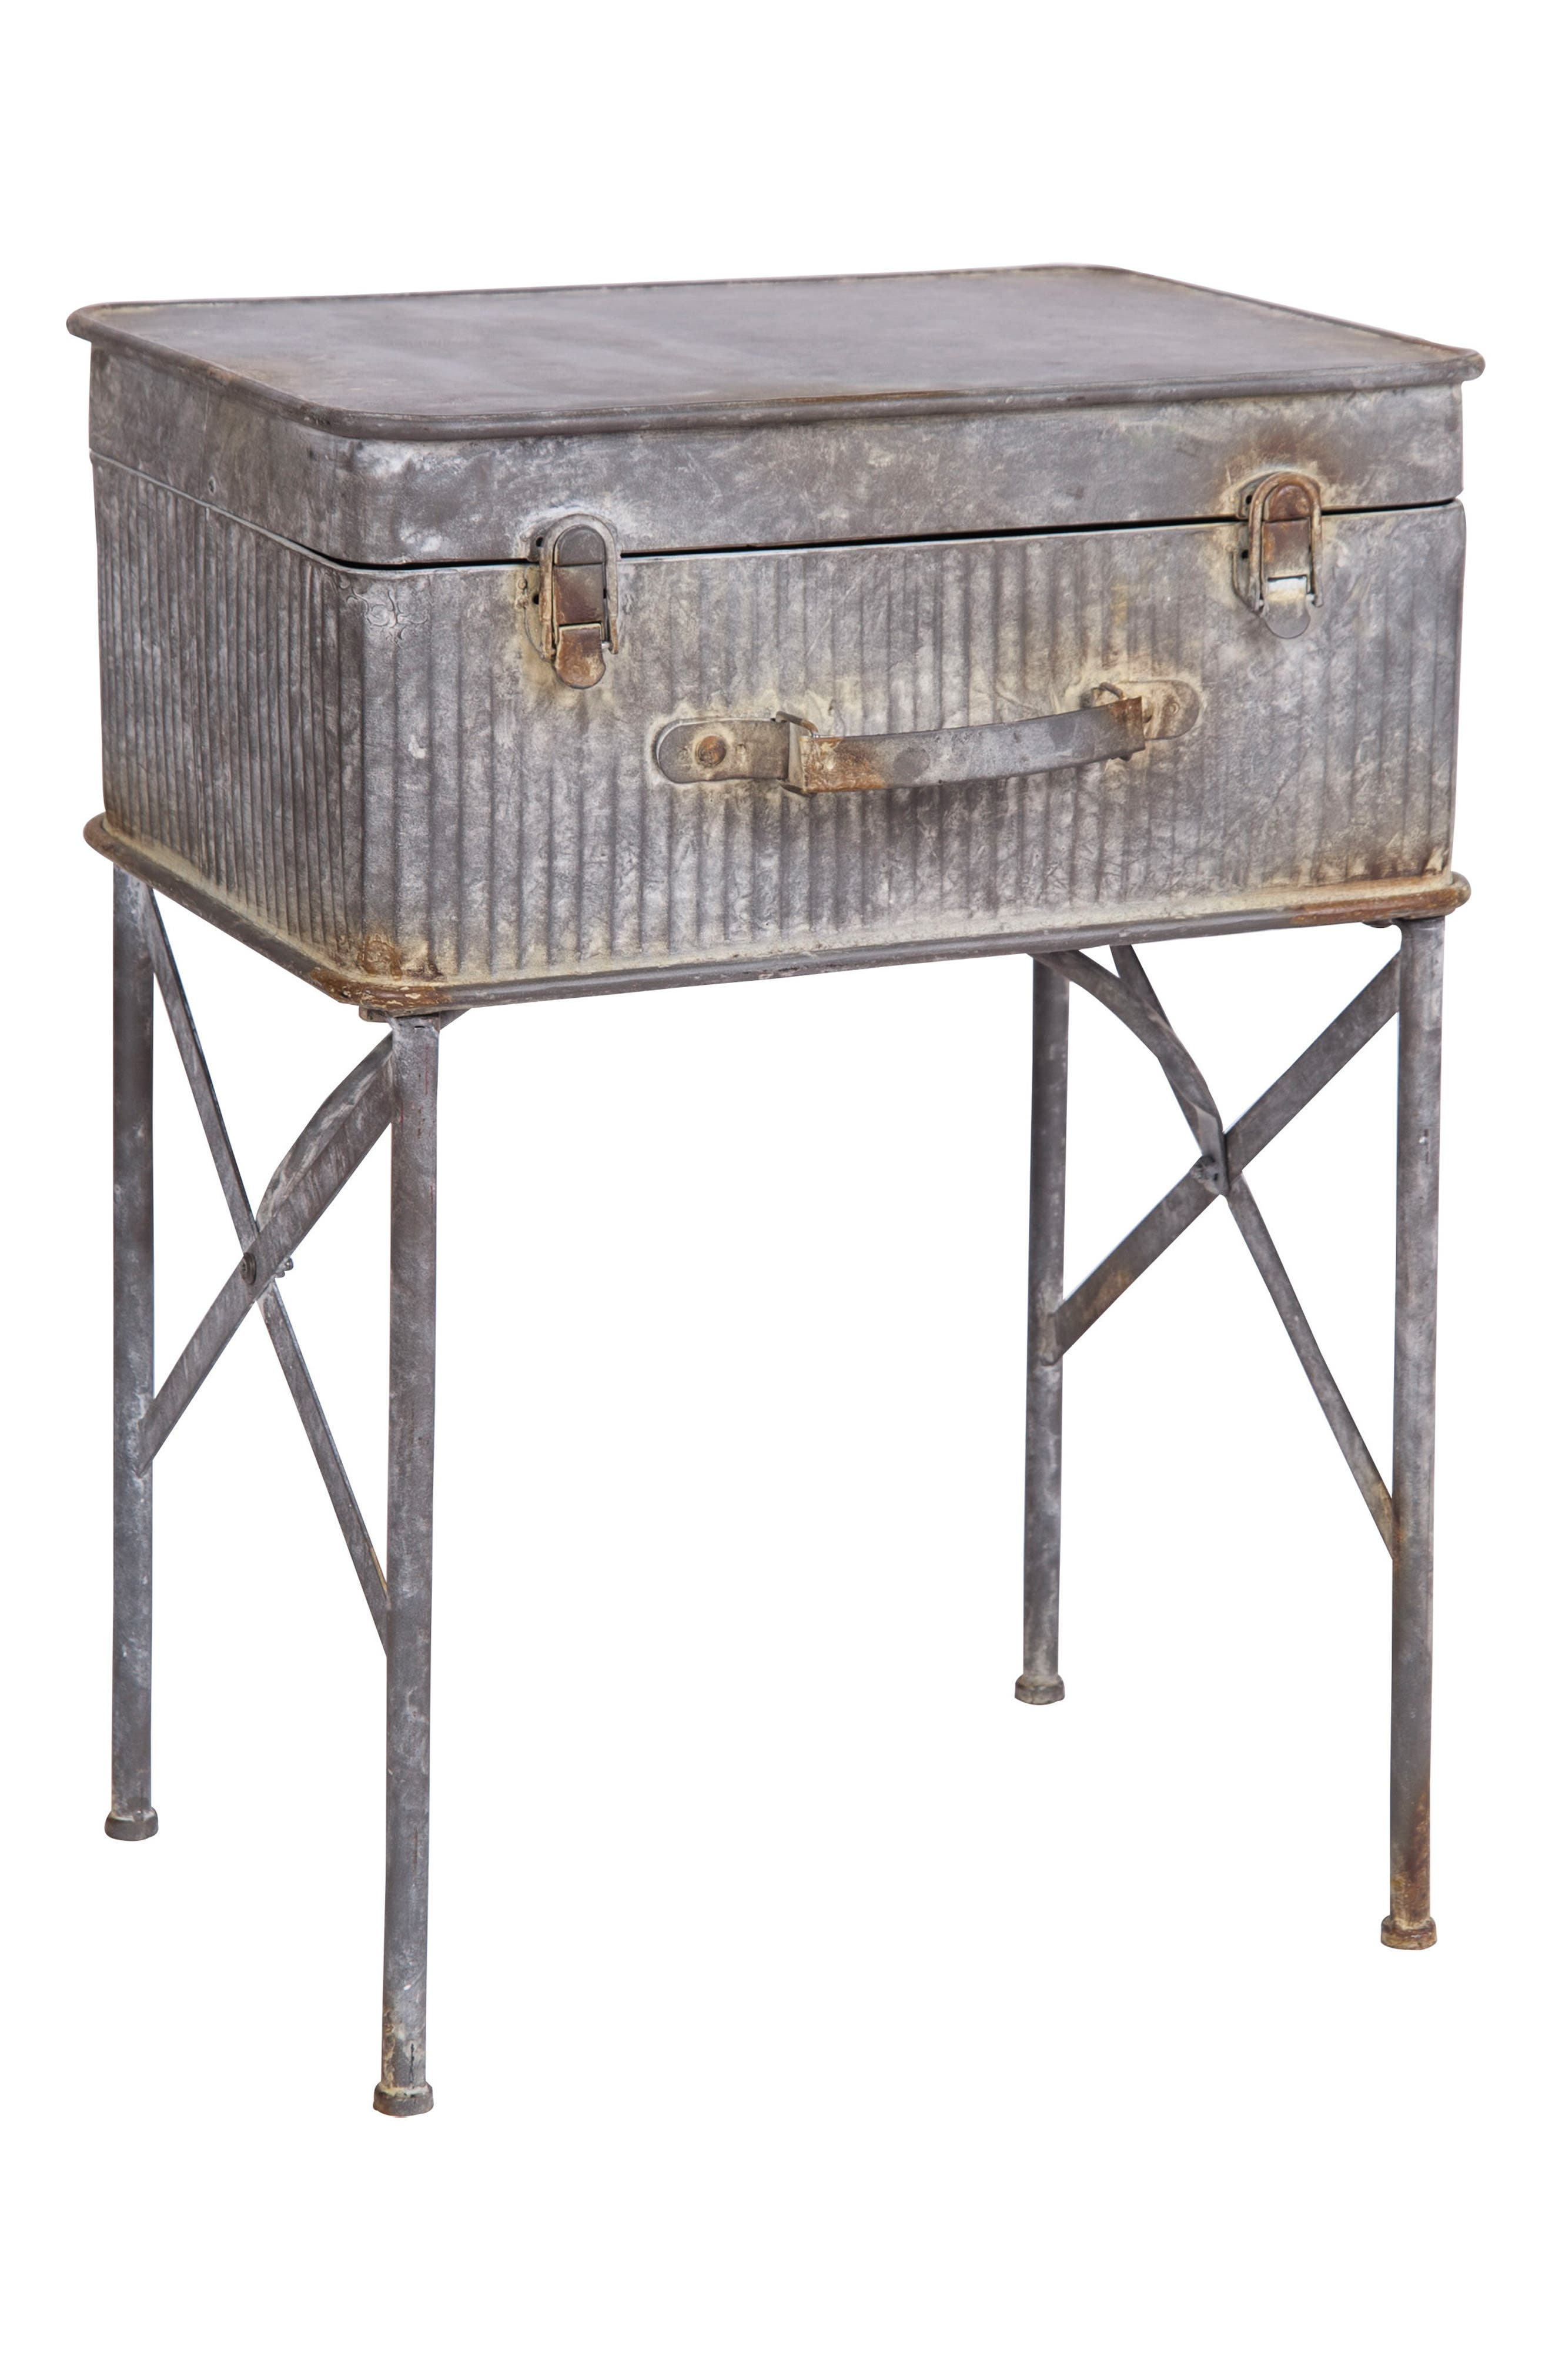 Alternate Image 1 Selected - Foreside Devon Suitcase Side Table